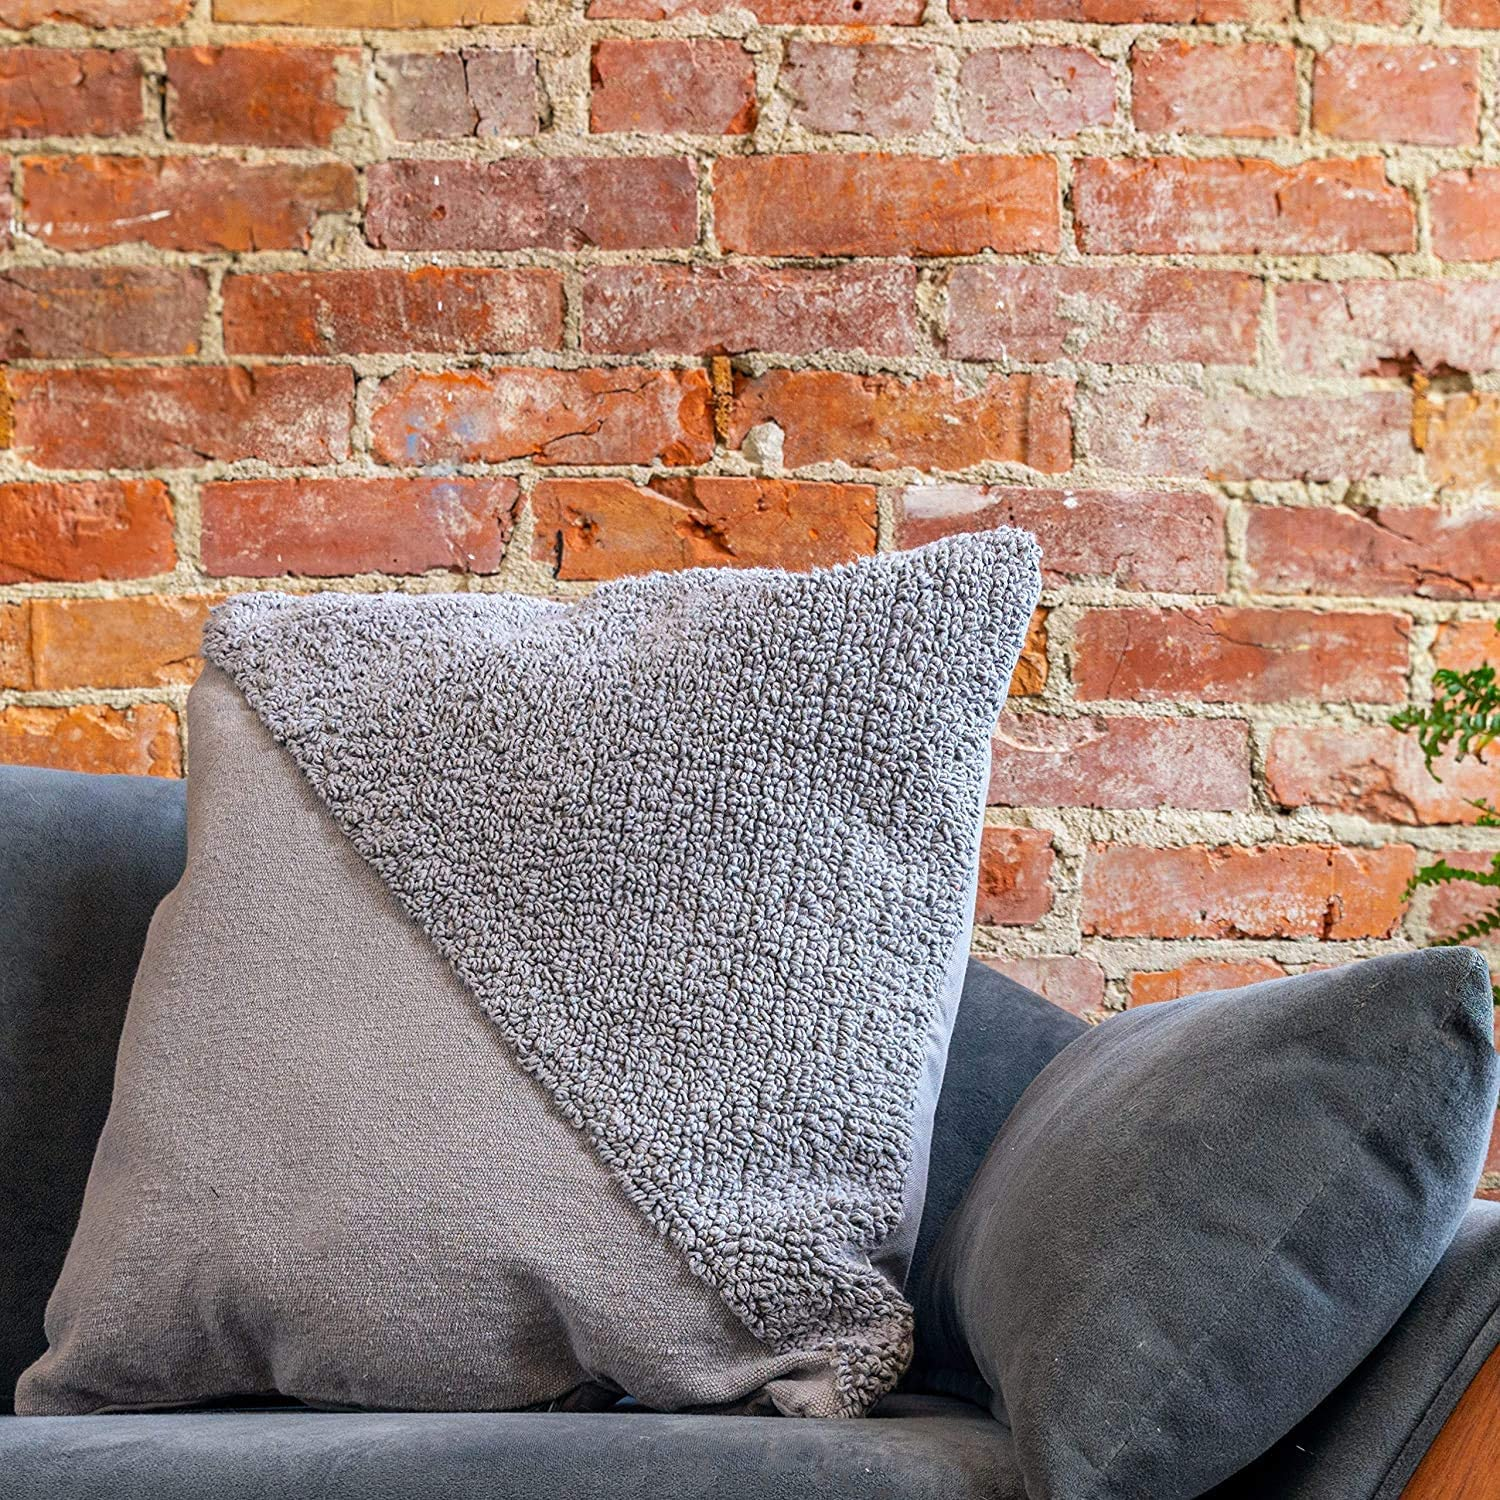 Refinery29 | Sawyer Collection | Luxury Decorative Textured Throw Pillows, Super Soft with Stylish Modern Diagonal Woven Design for Home Décor, Grey